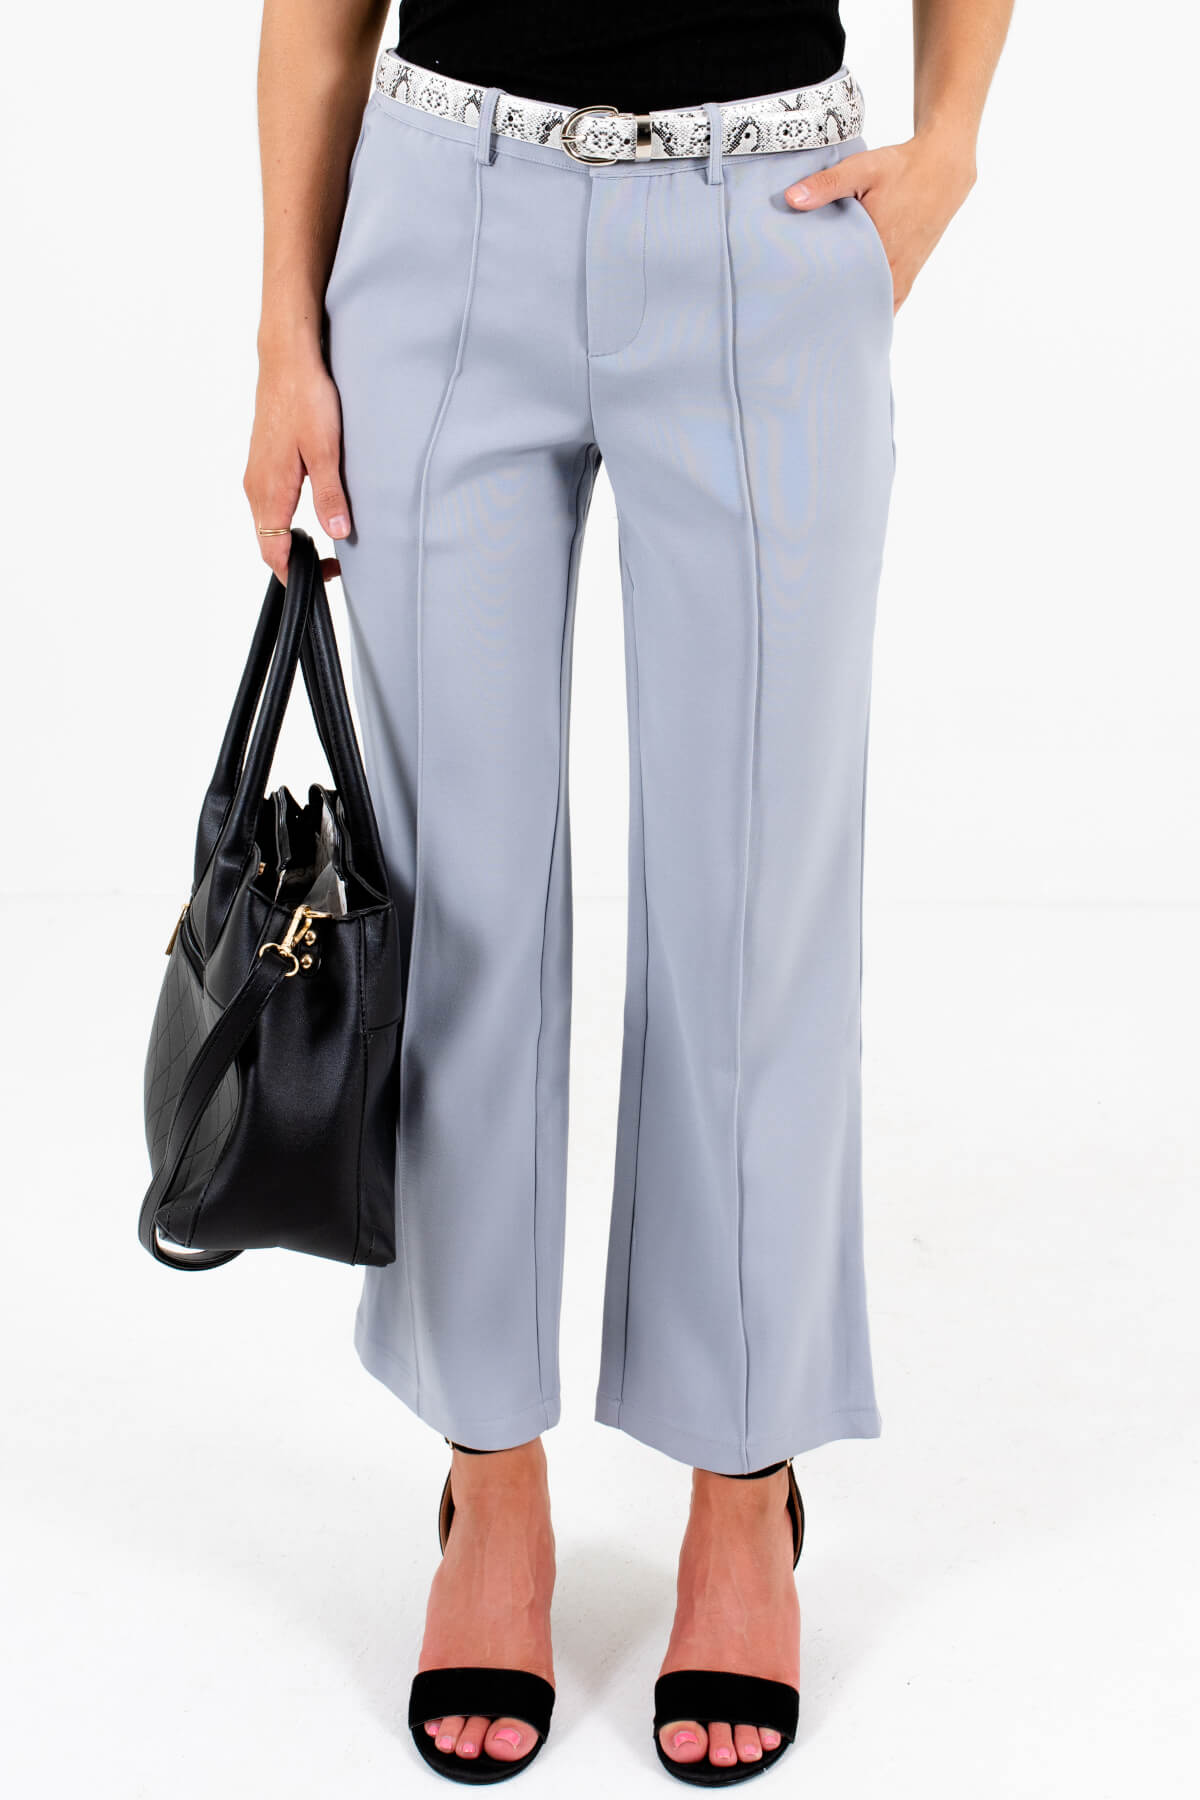 Light Slate Blue Gray Business Casual Slacks for Women